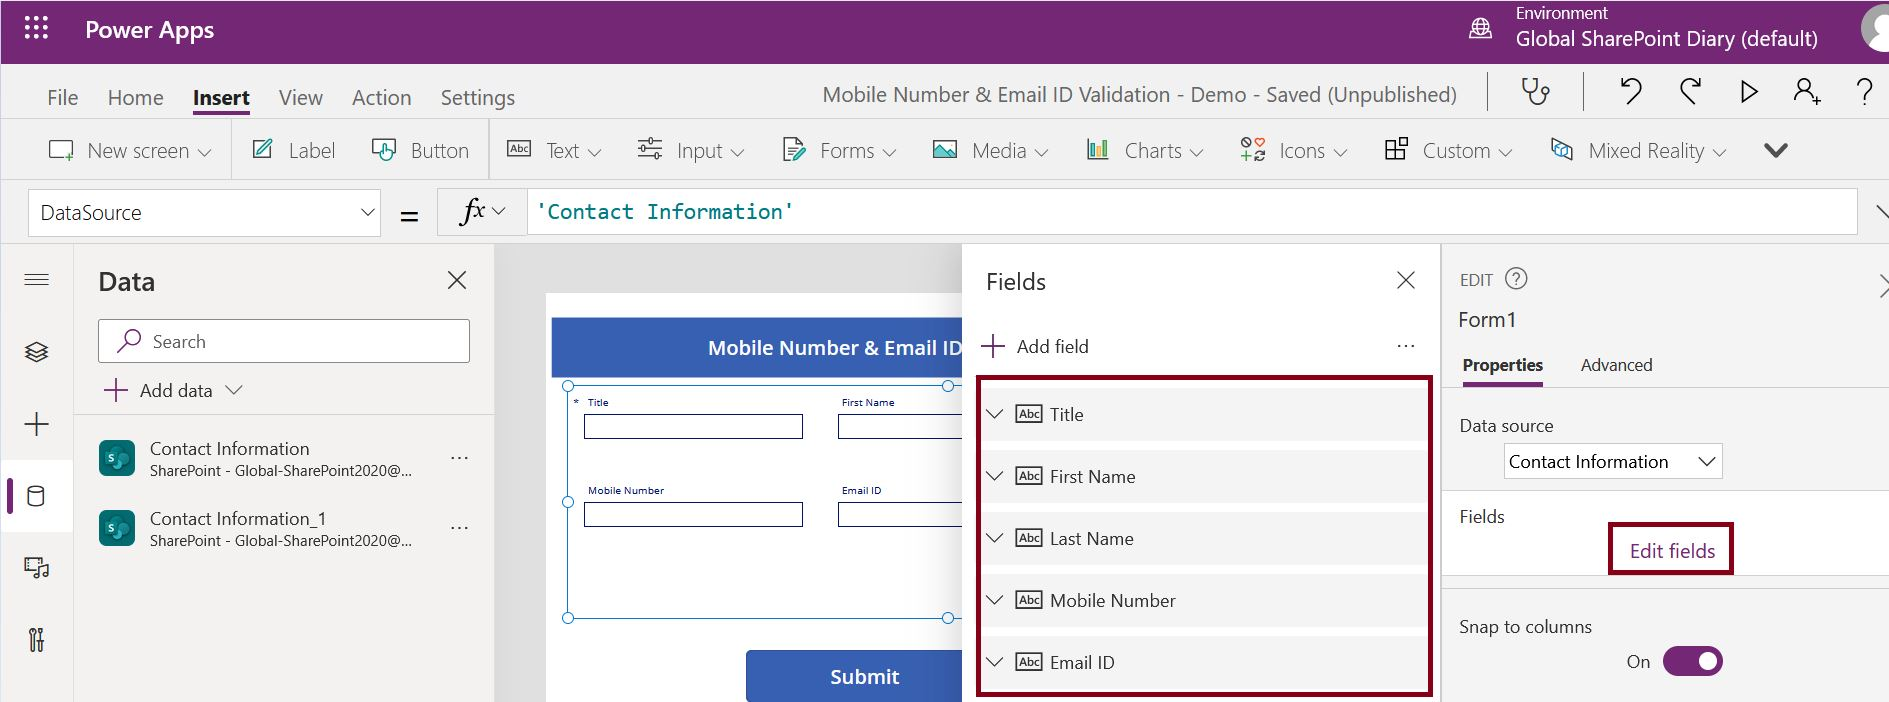 Add or remove fields in SharePoint data source from PowerApps